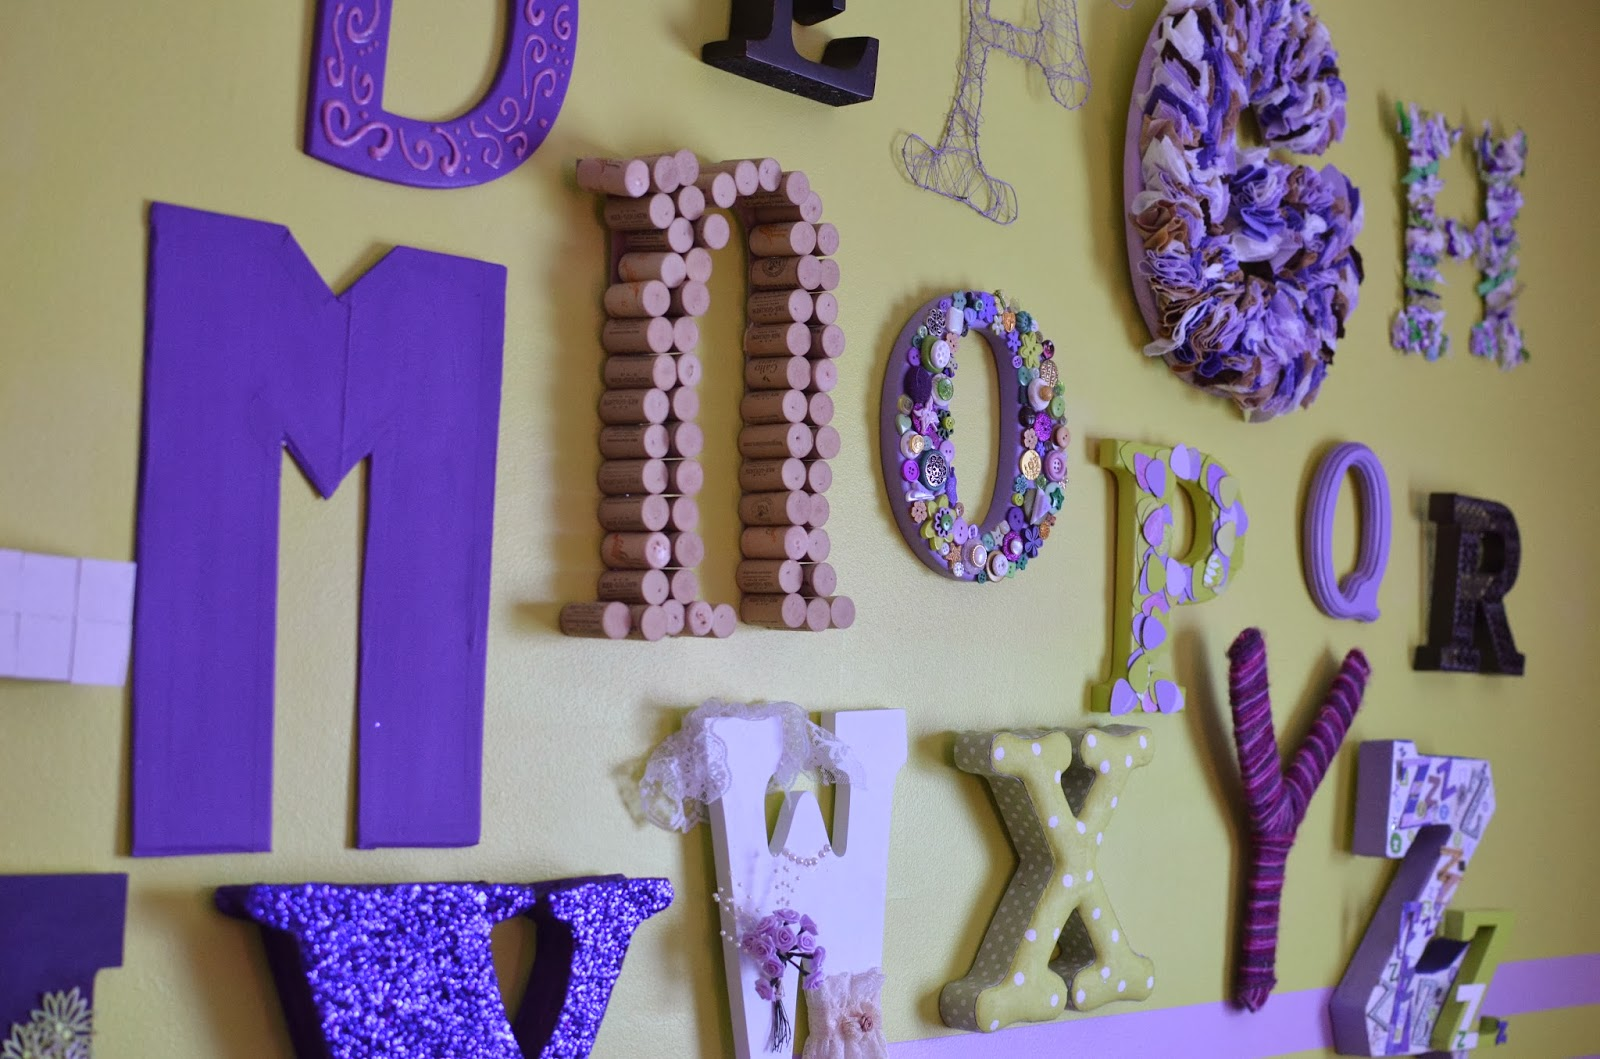 When I Was Pregnant With My Daughter (2 Years Ago), I Was Inspired By All  Of These Lovely Images I Found All Over The Internet Of Eclectic Alphabets  Hung In ...